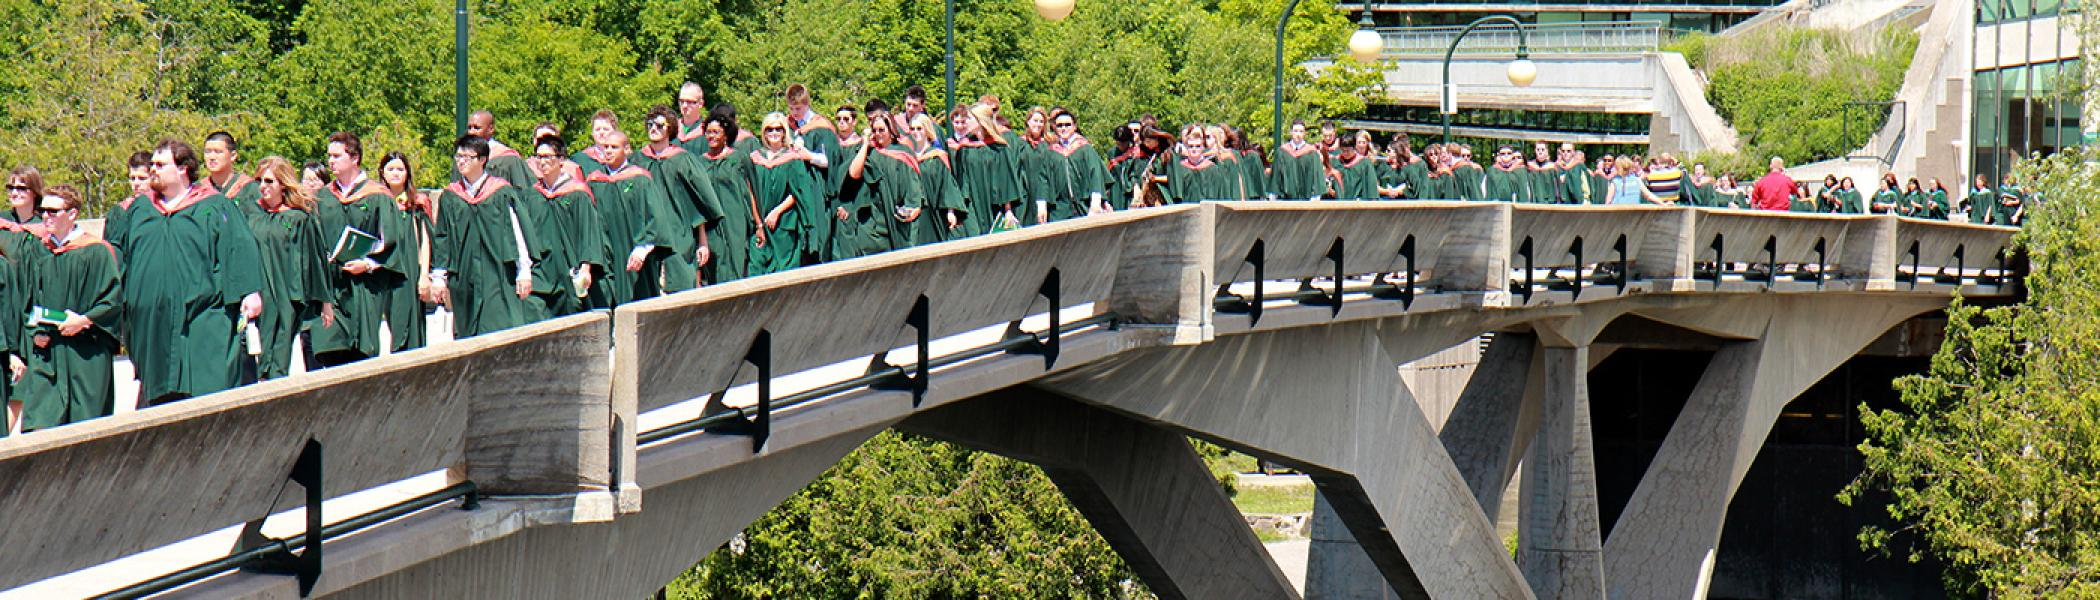 Student crowd of graduating students walking across the Faryon bridge during convocation on a sunny afternoon